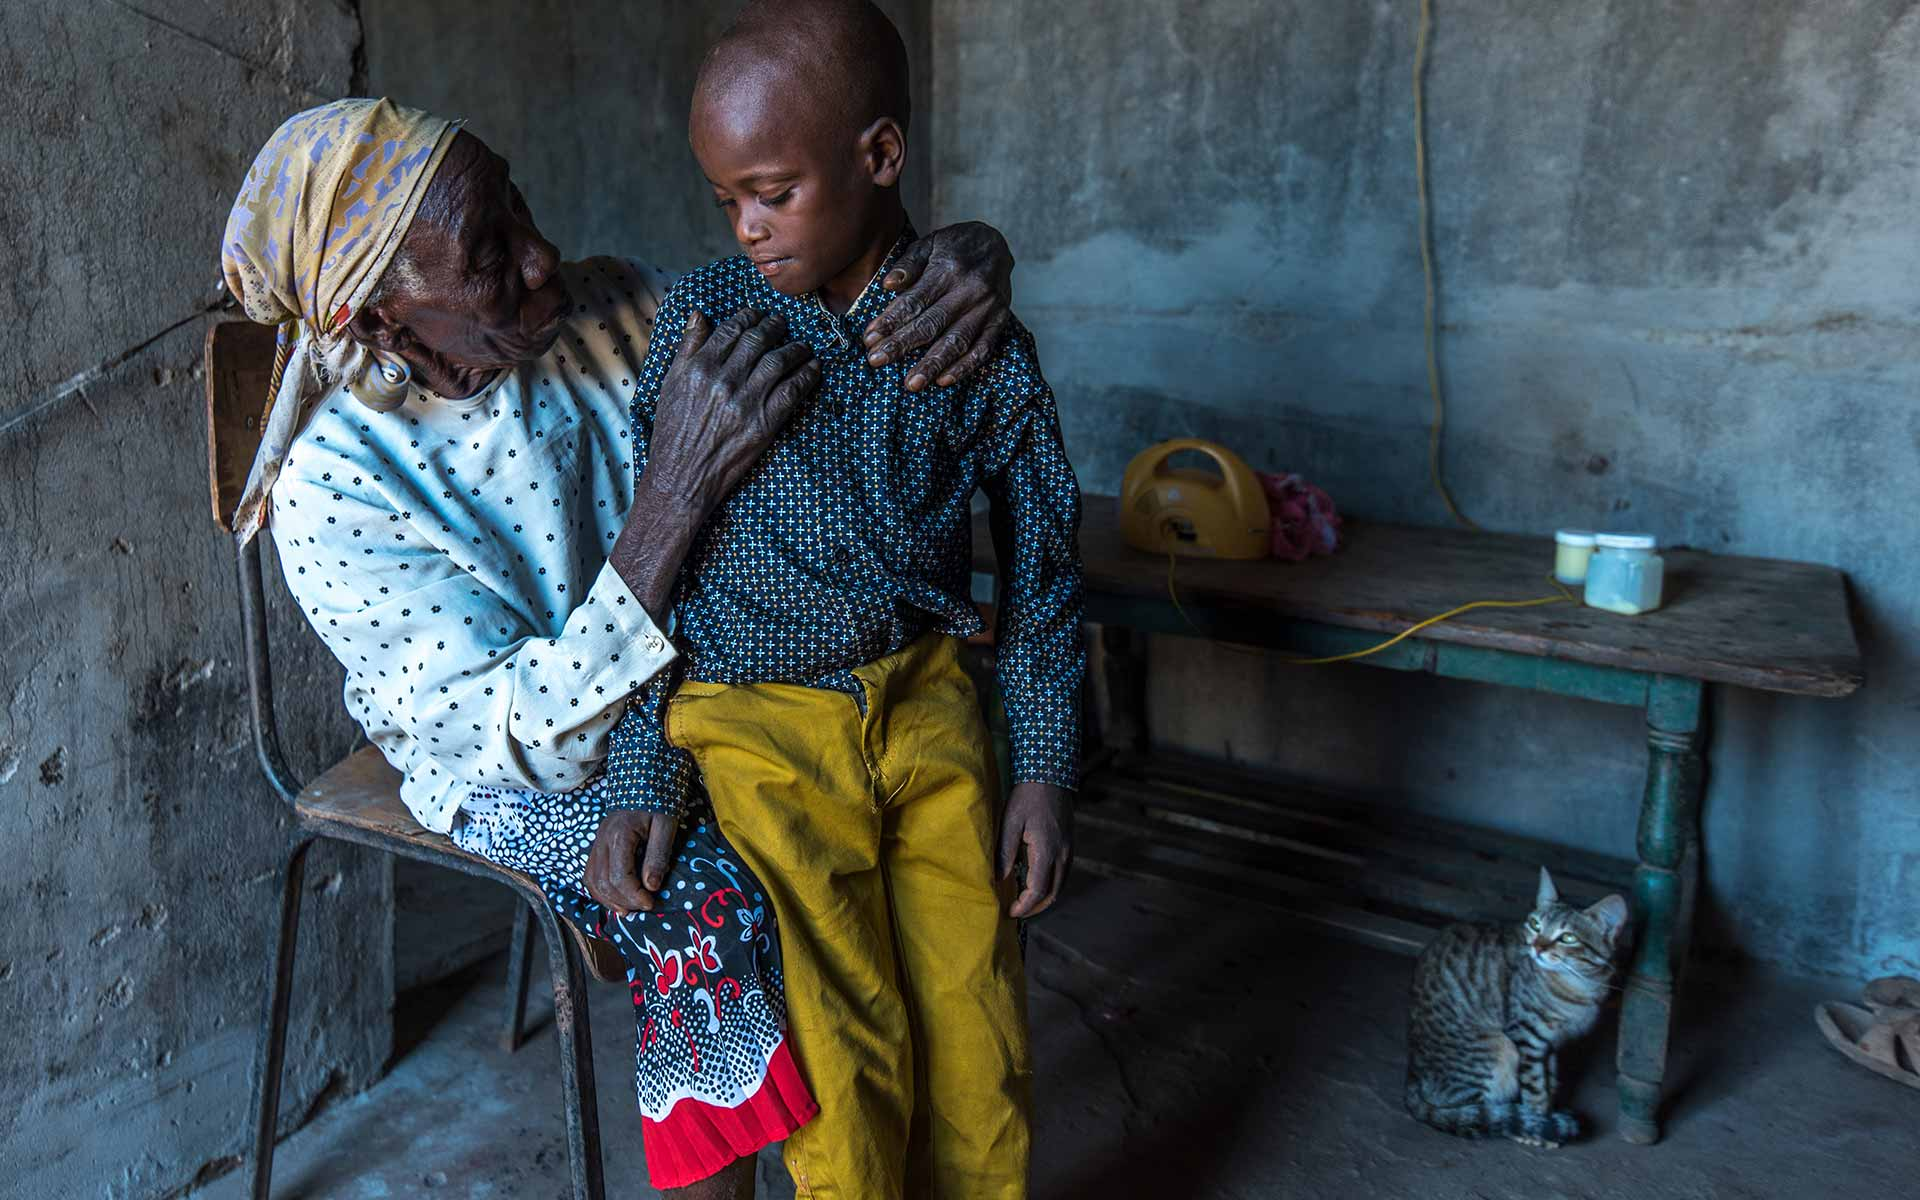 A young boy sits with his grandmother in their home in kenya